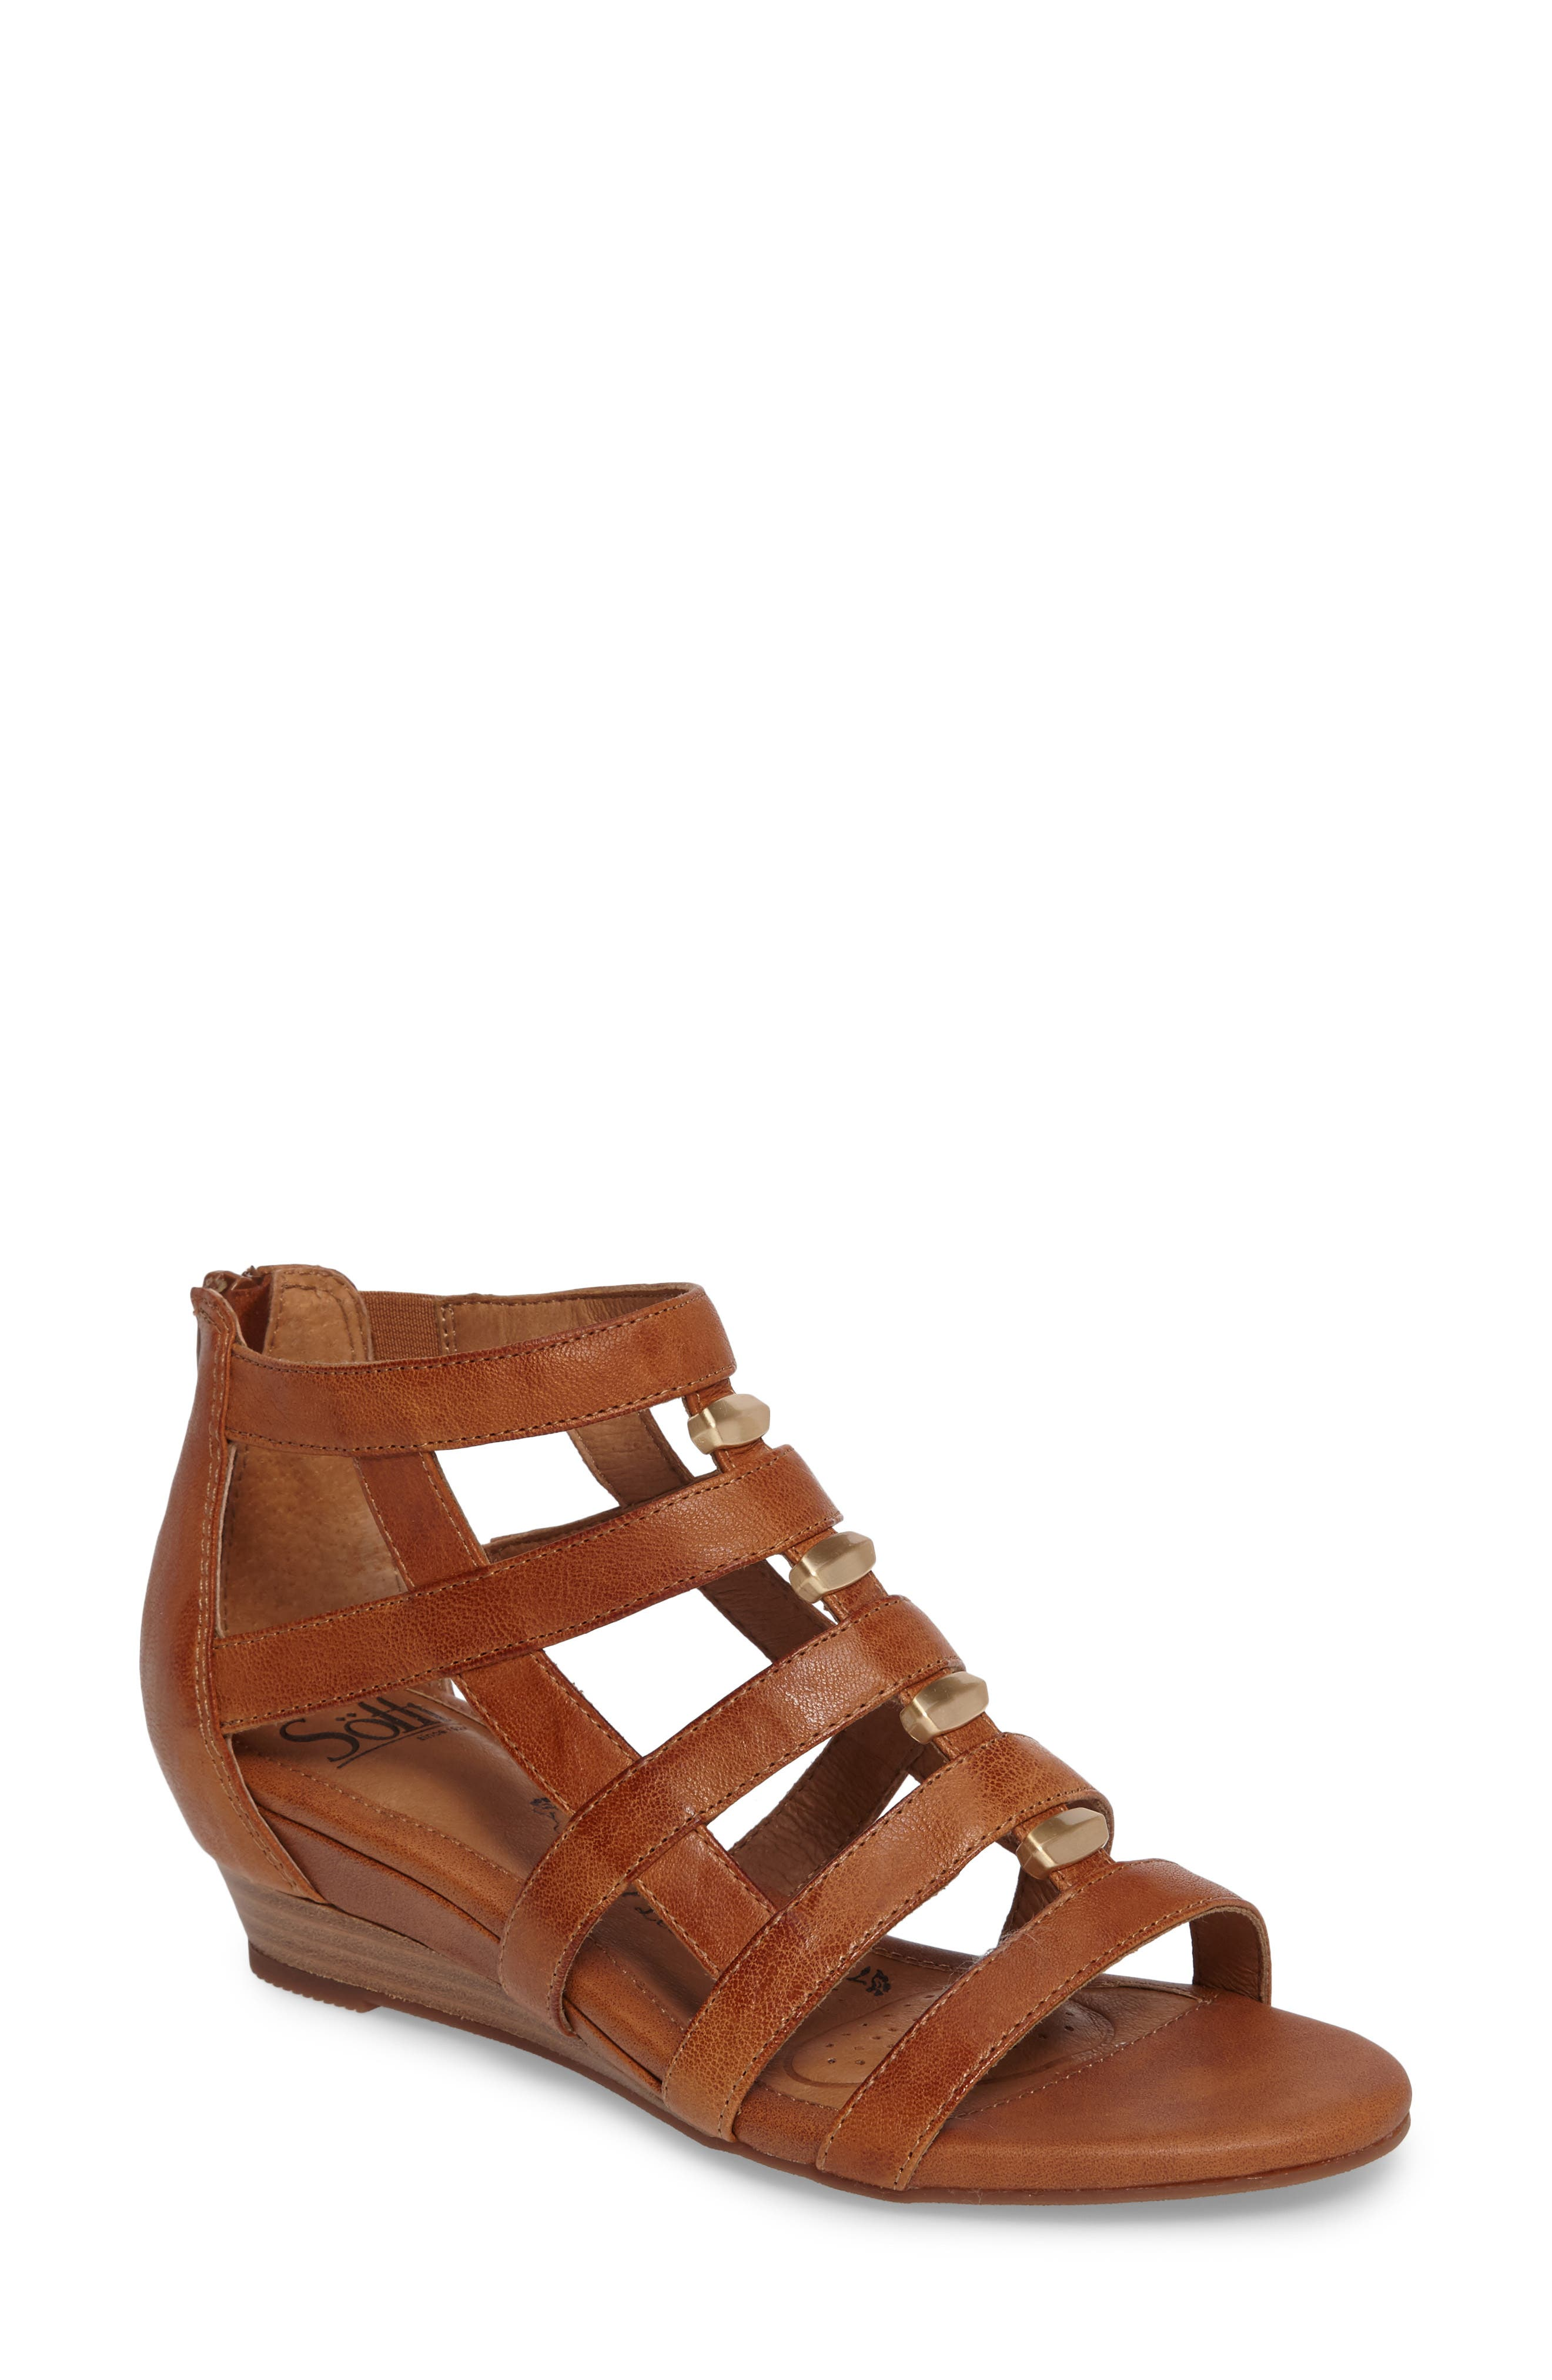 Rio Gladiator Wedge Sandal, Main, color, LUGGAGE LEATHER